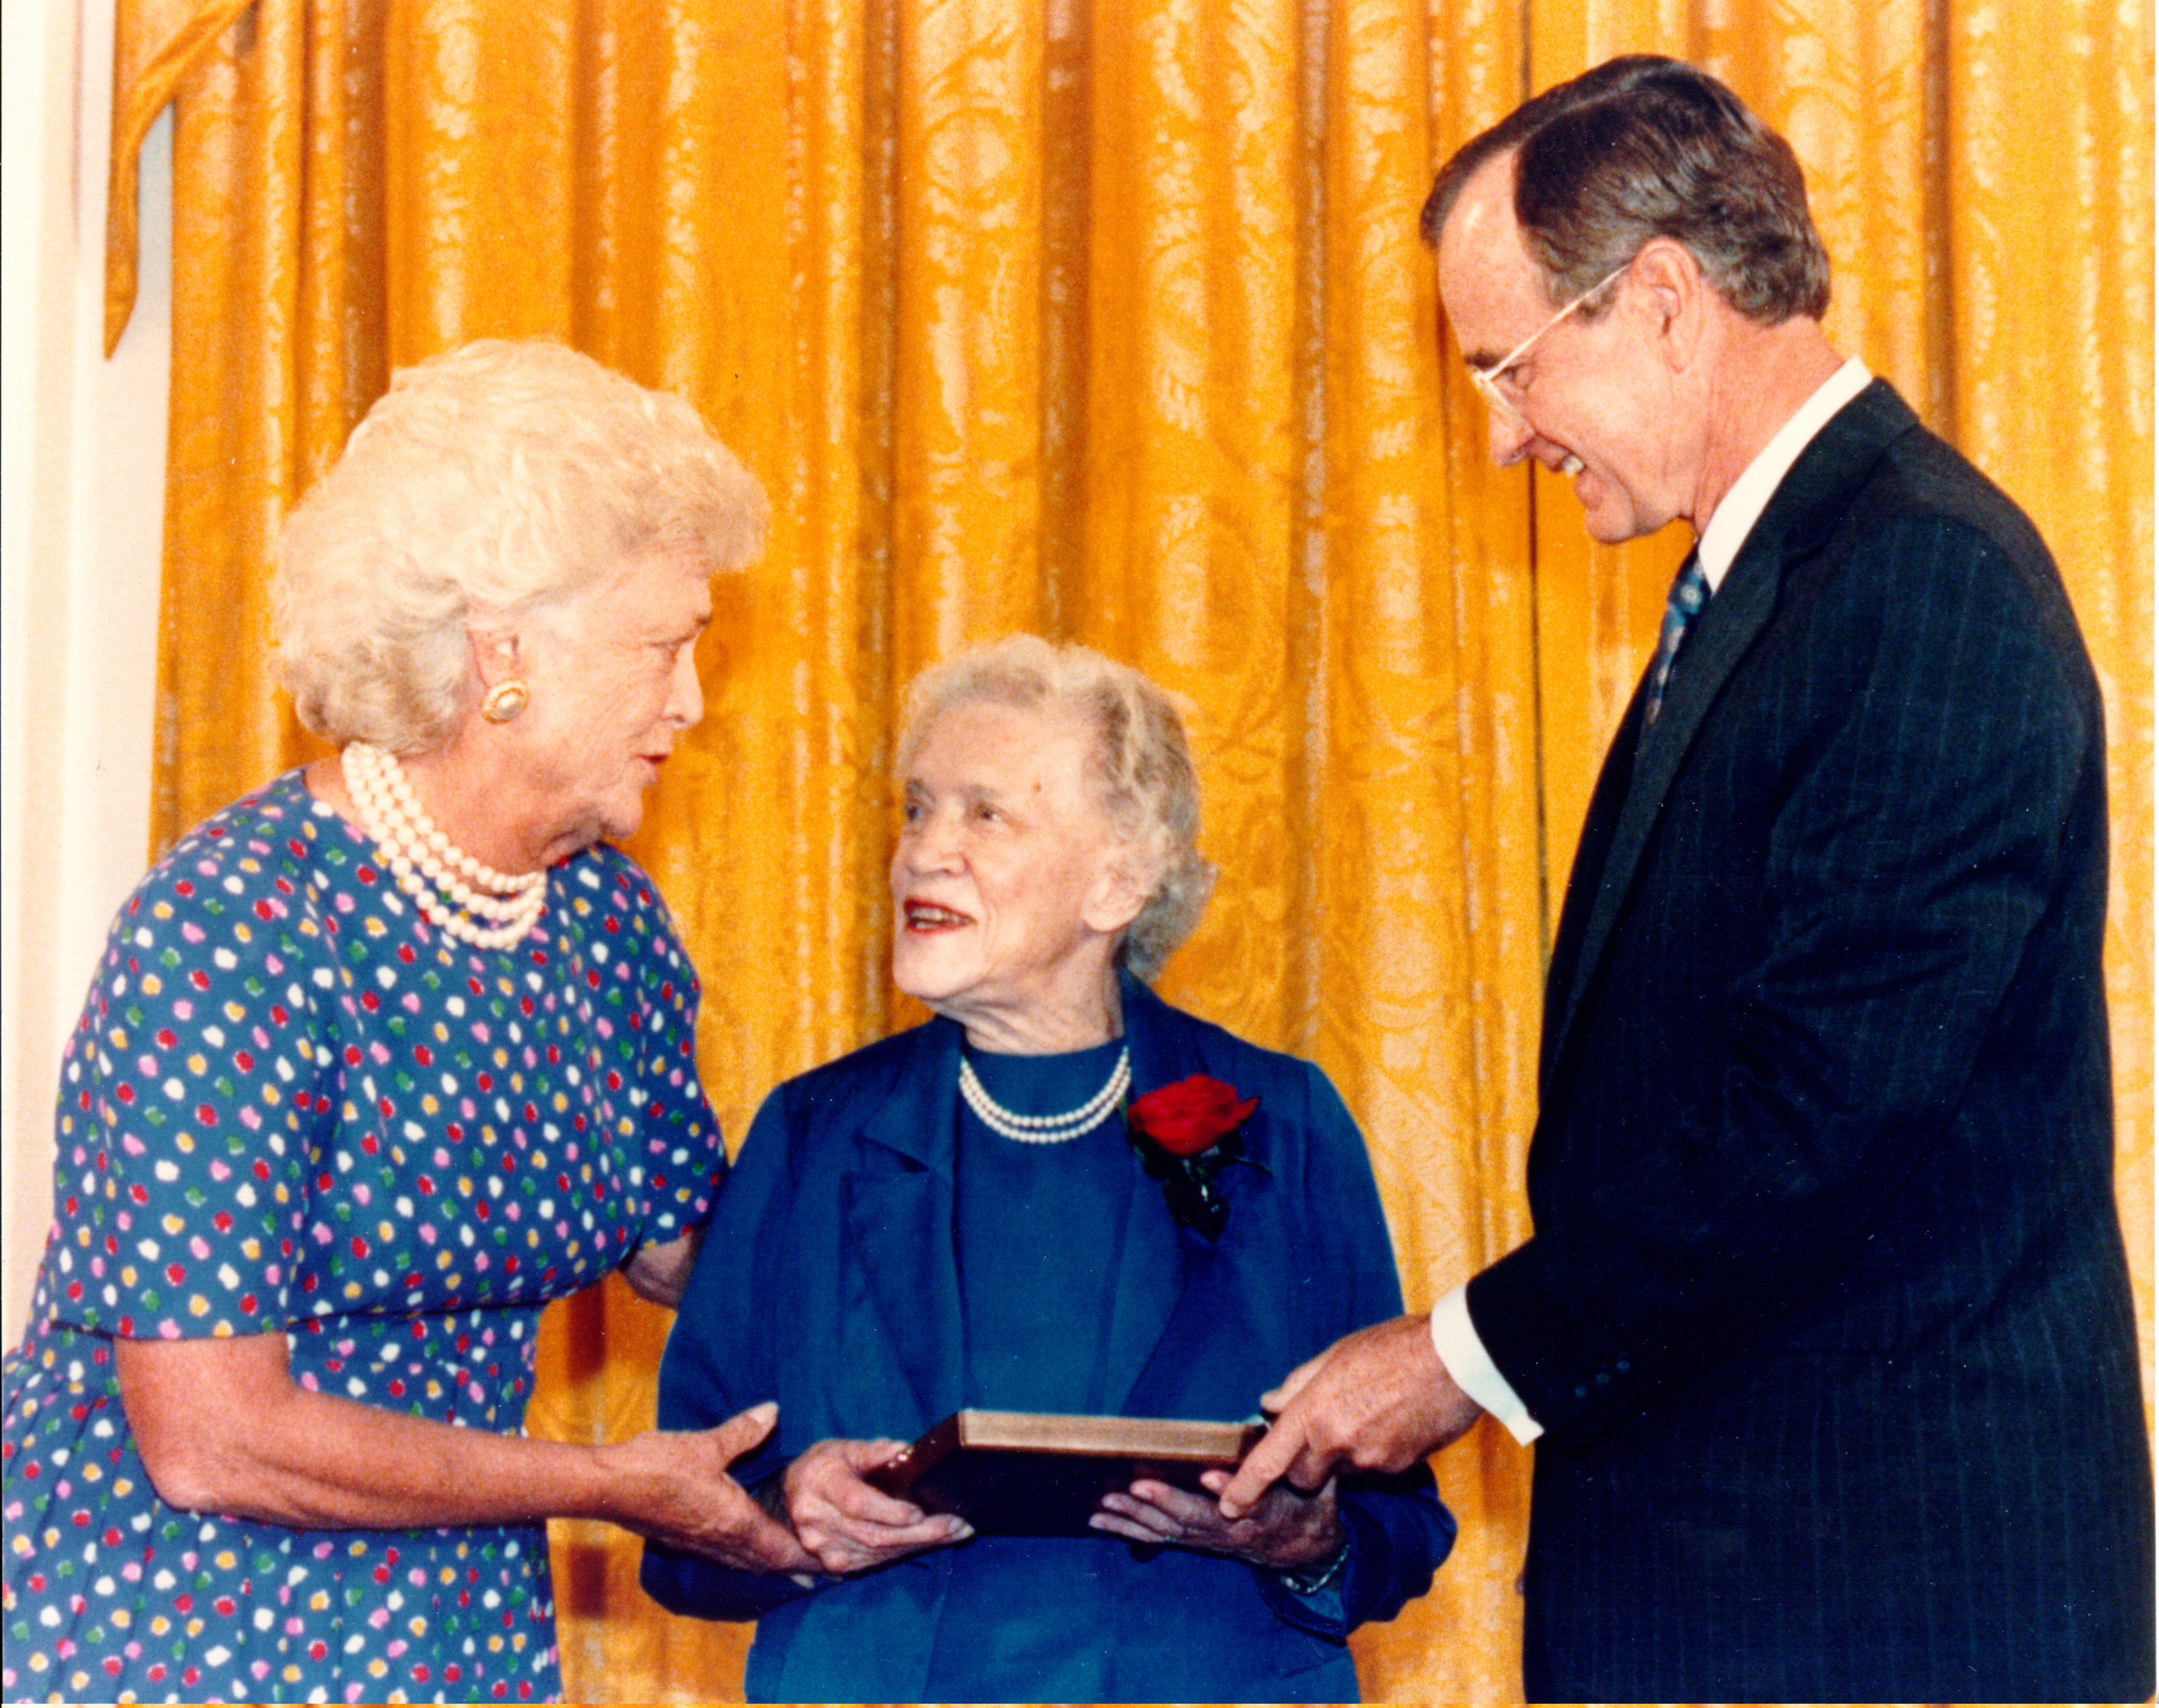 1989: Accepts the Presidential Medal of Freedom from President George H. W. Bush at a White House ceremony.